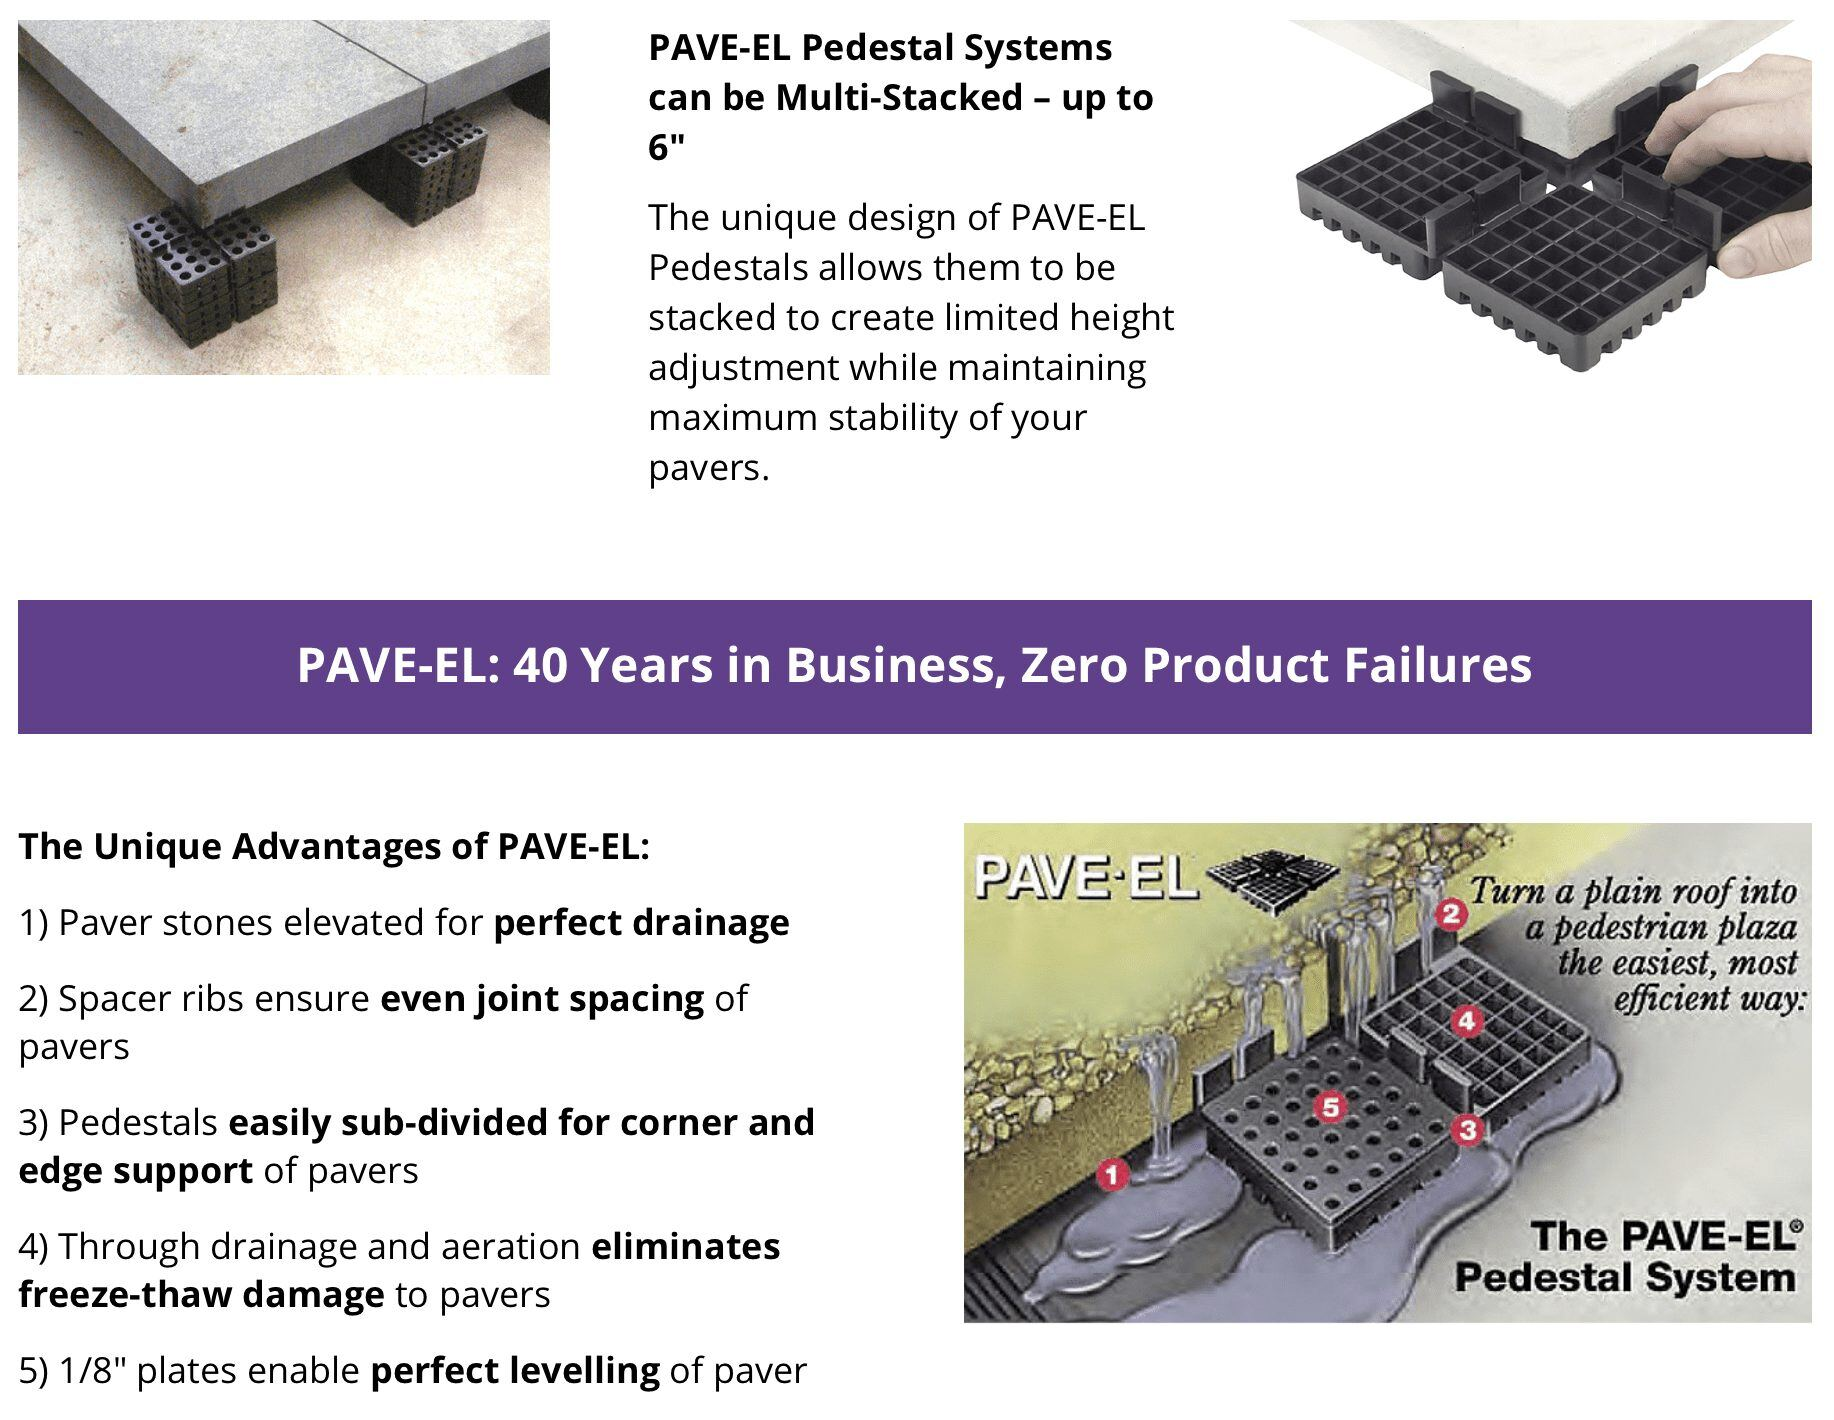 Roof Pavers and Paver Pedestals by Envirospec